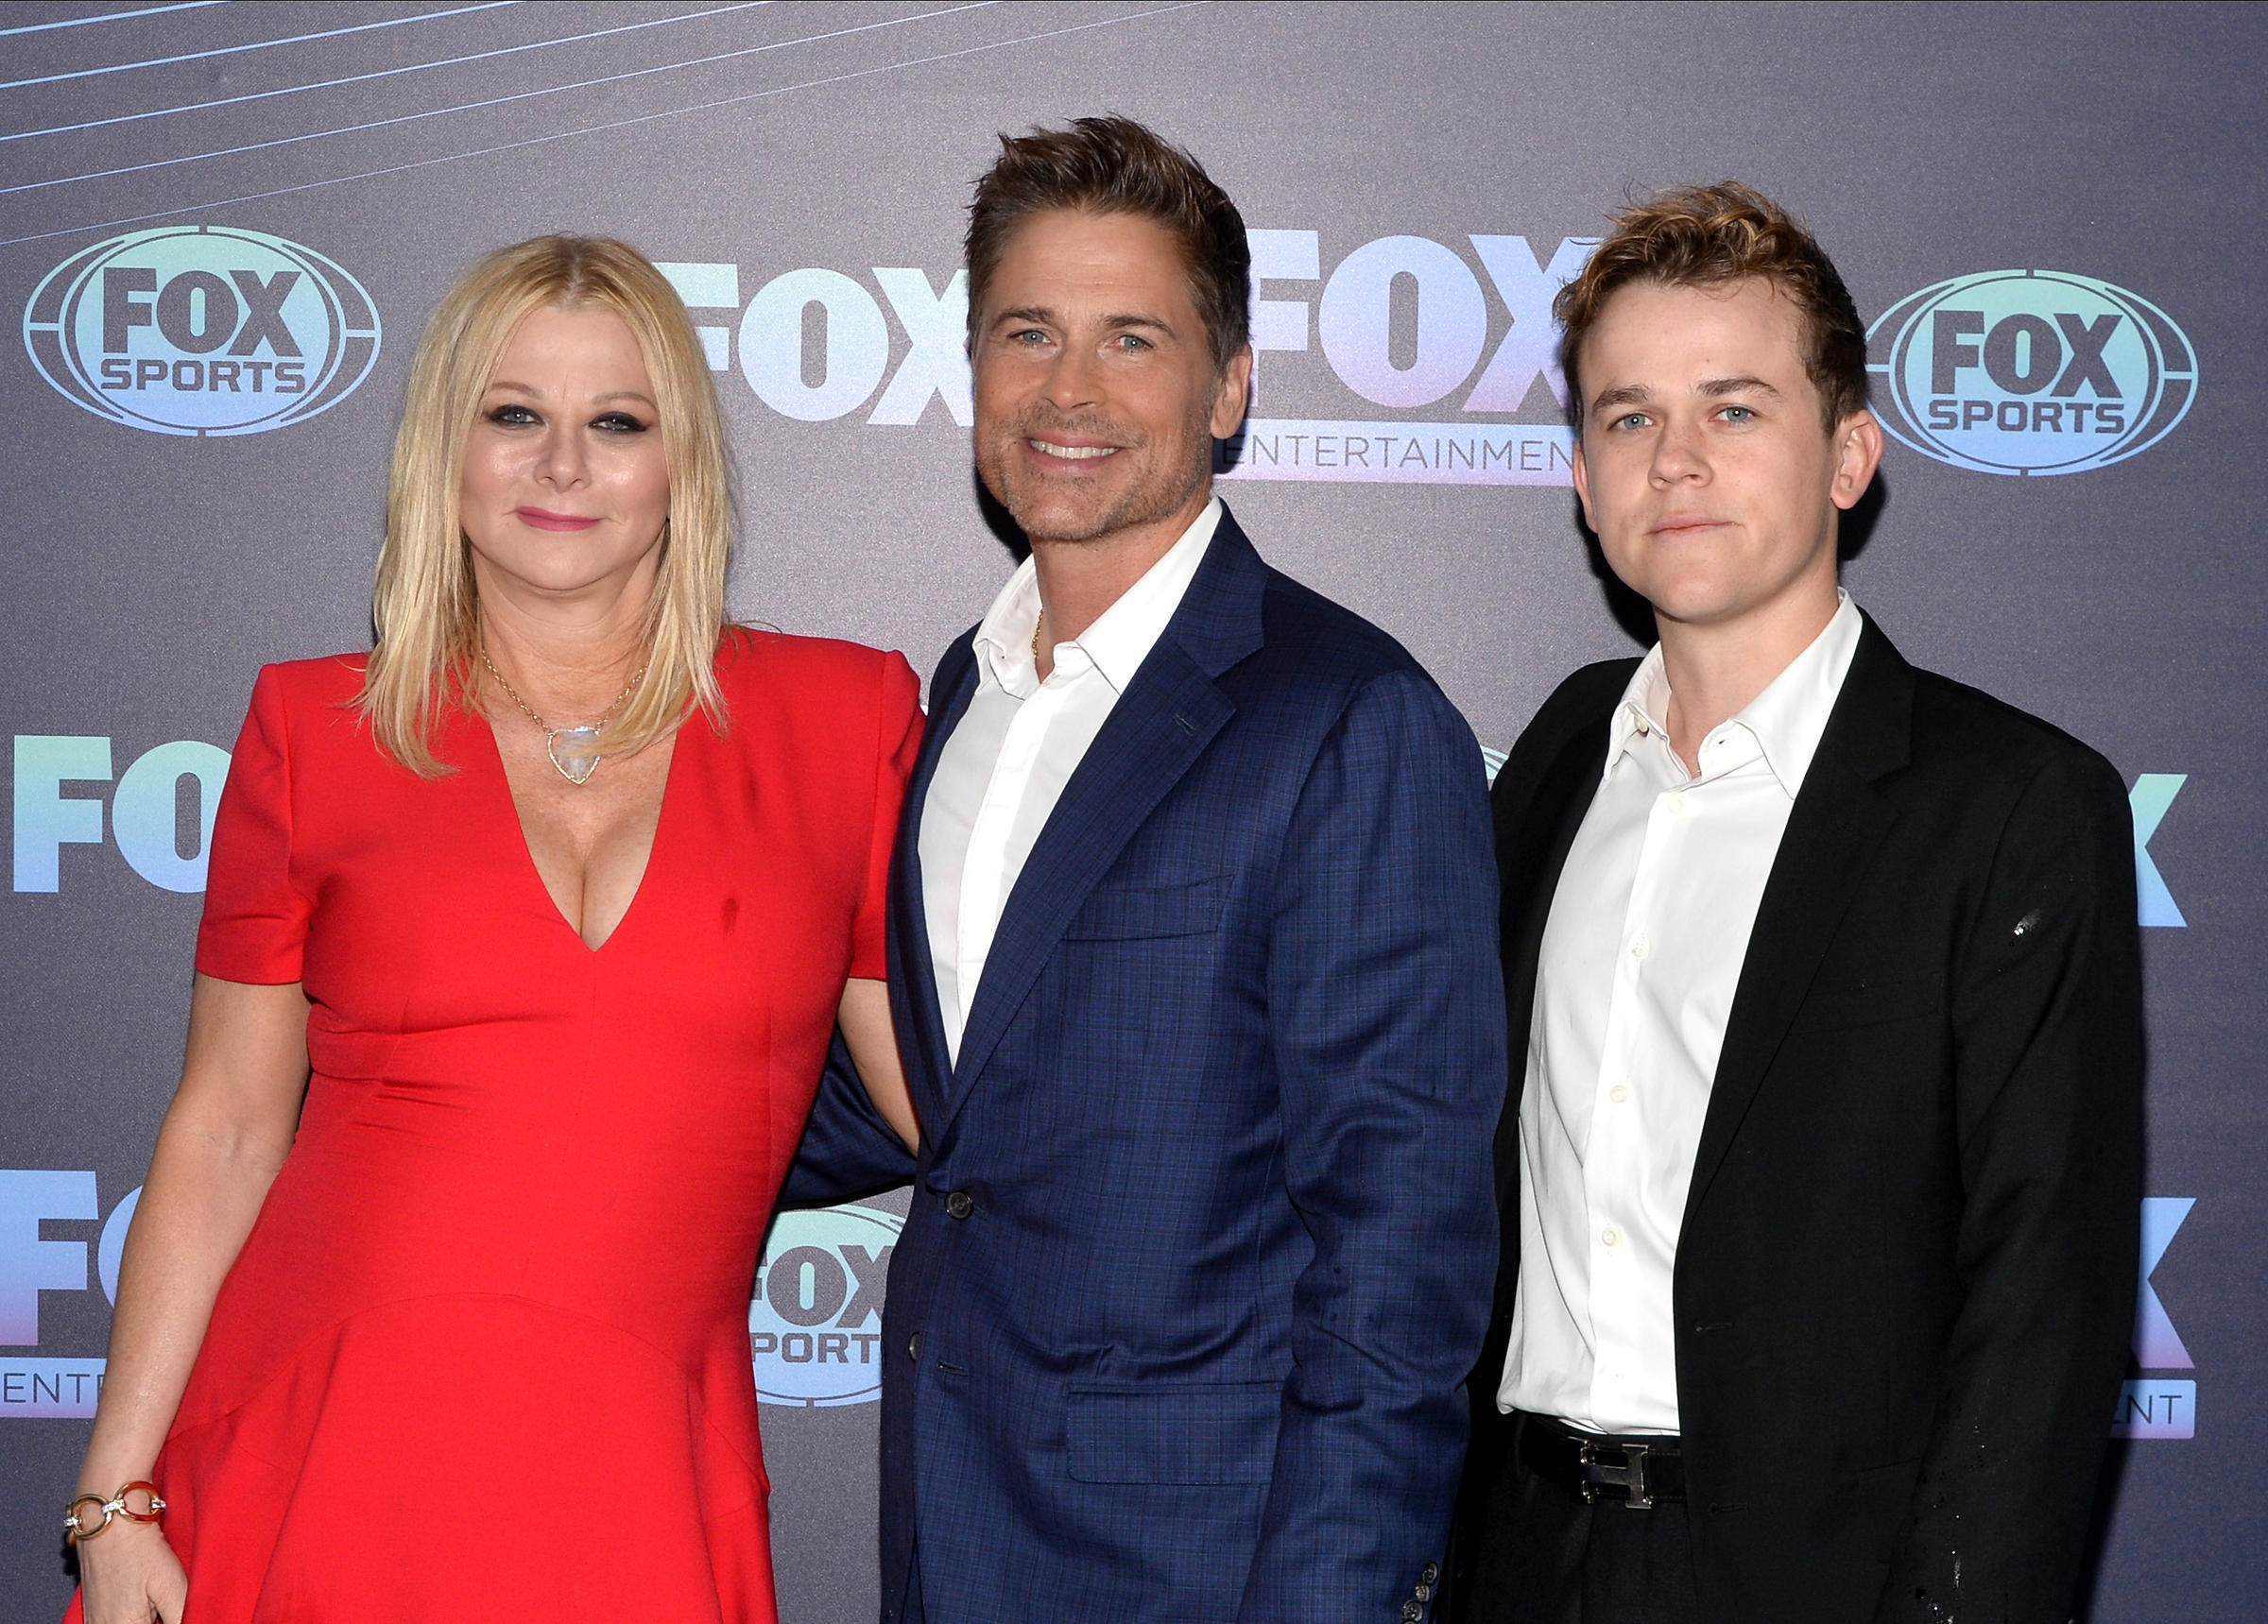 Actor Rob Lowe with his wife and son, John Lowe